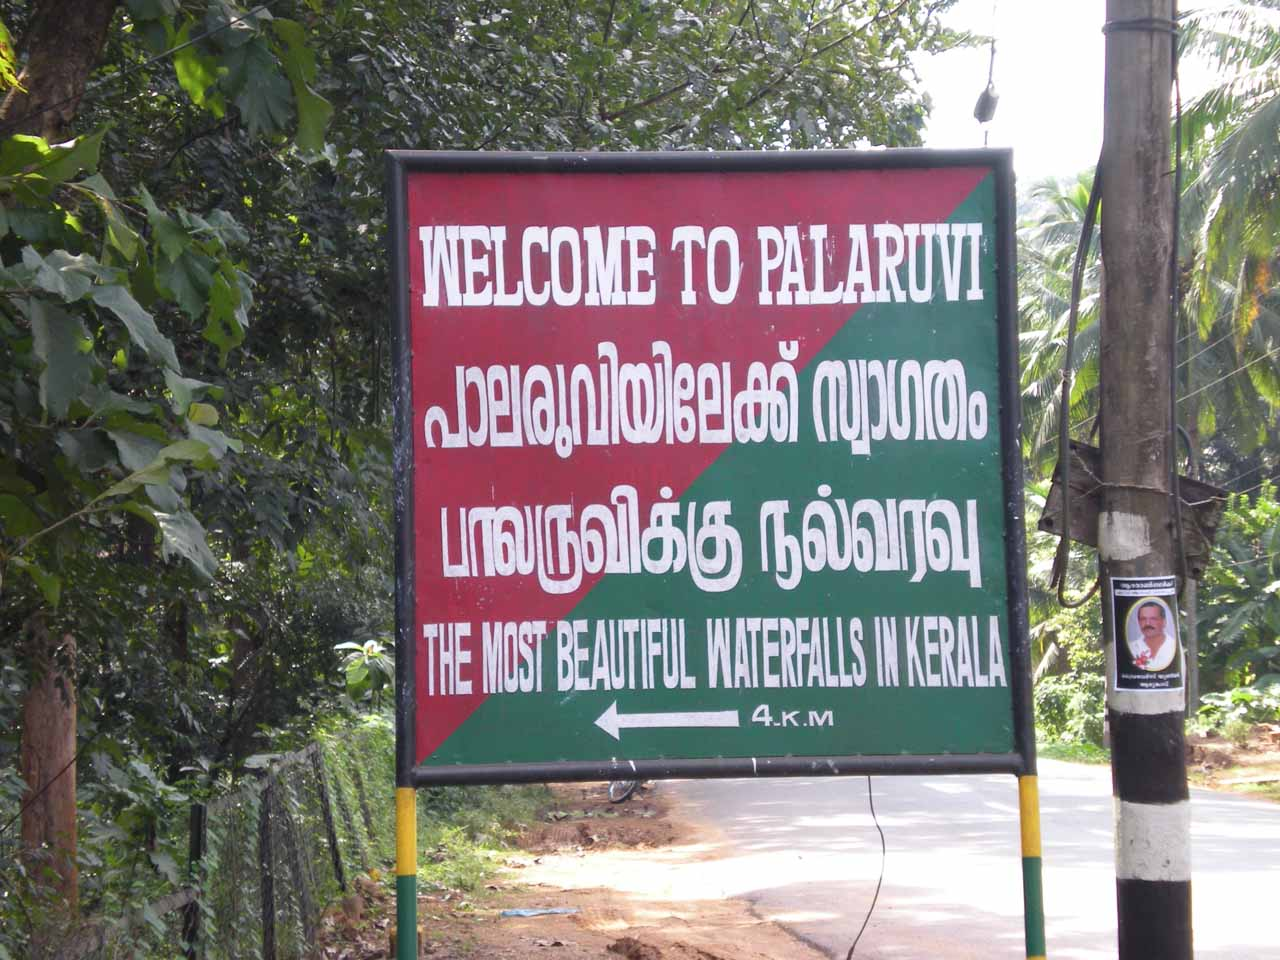 Pretty boastful sign at the turnoff for Palaruvi Falls saying it was the most beautiful waterfalls in the state of Kerala